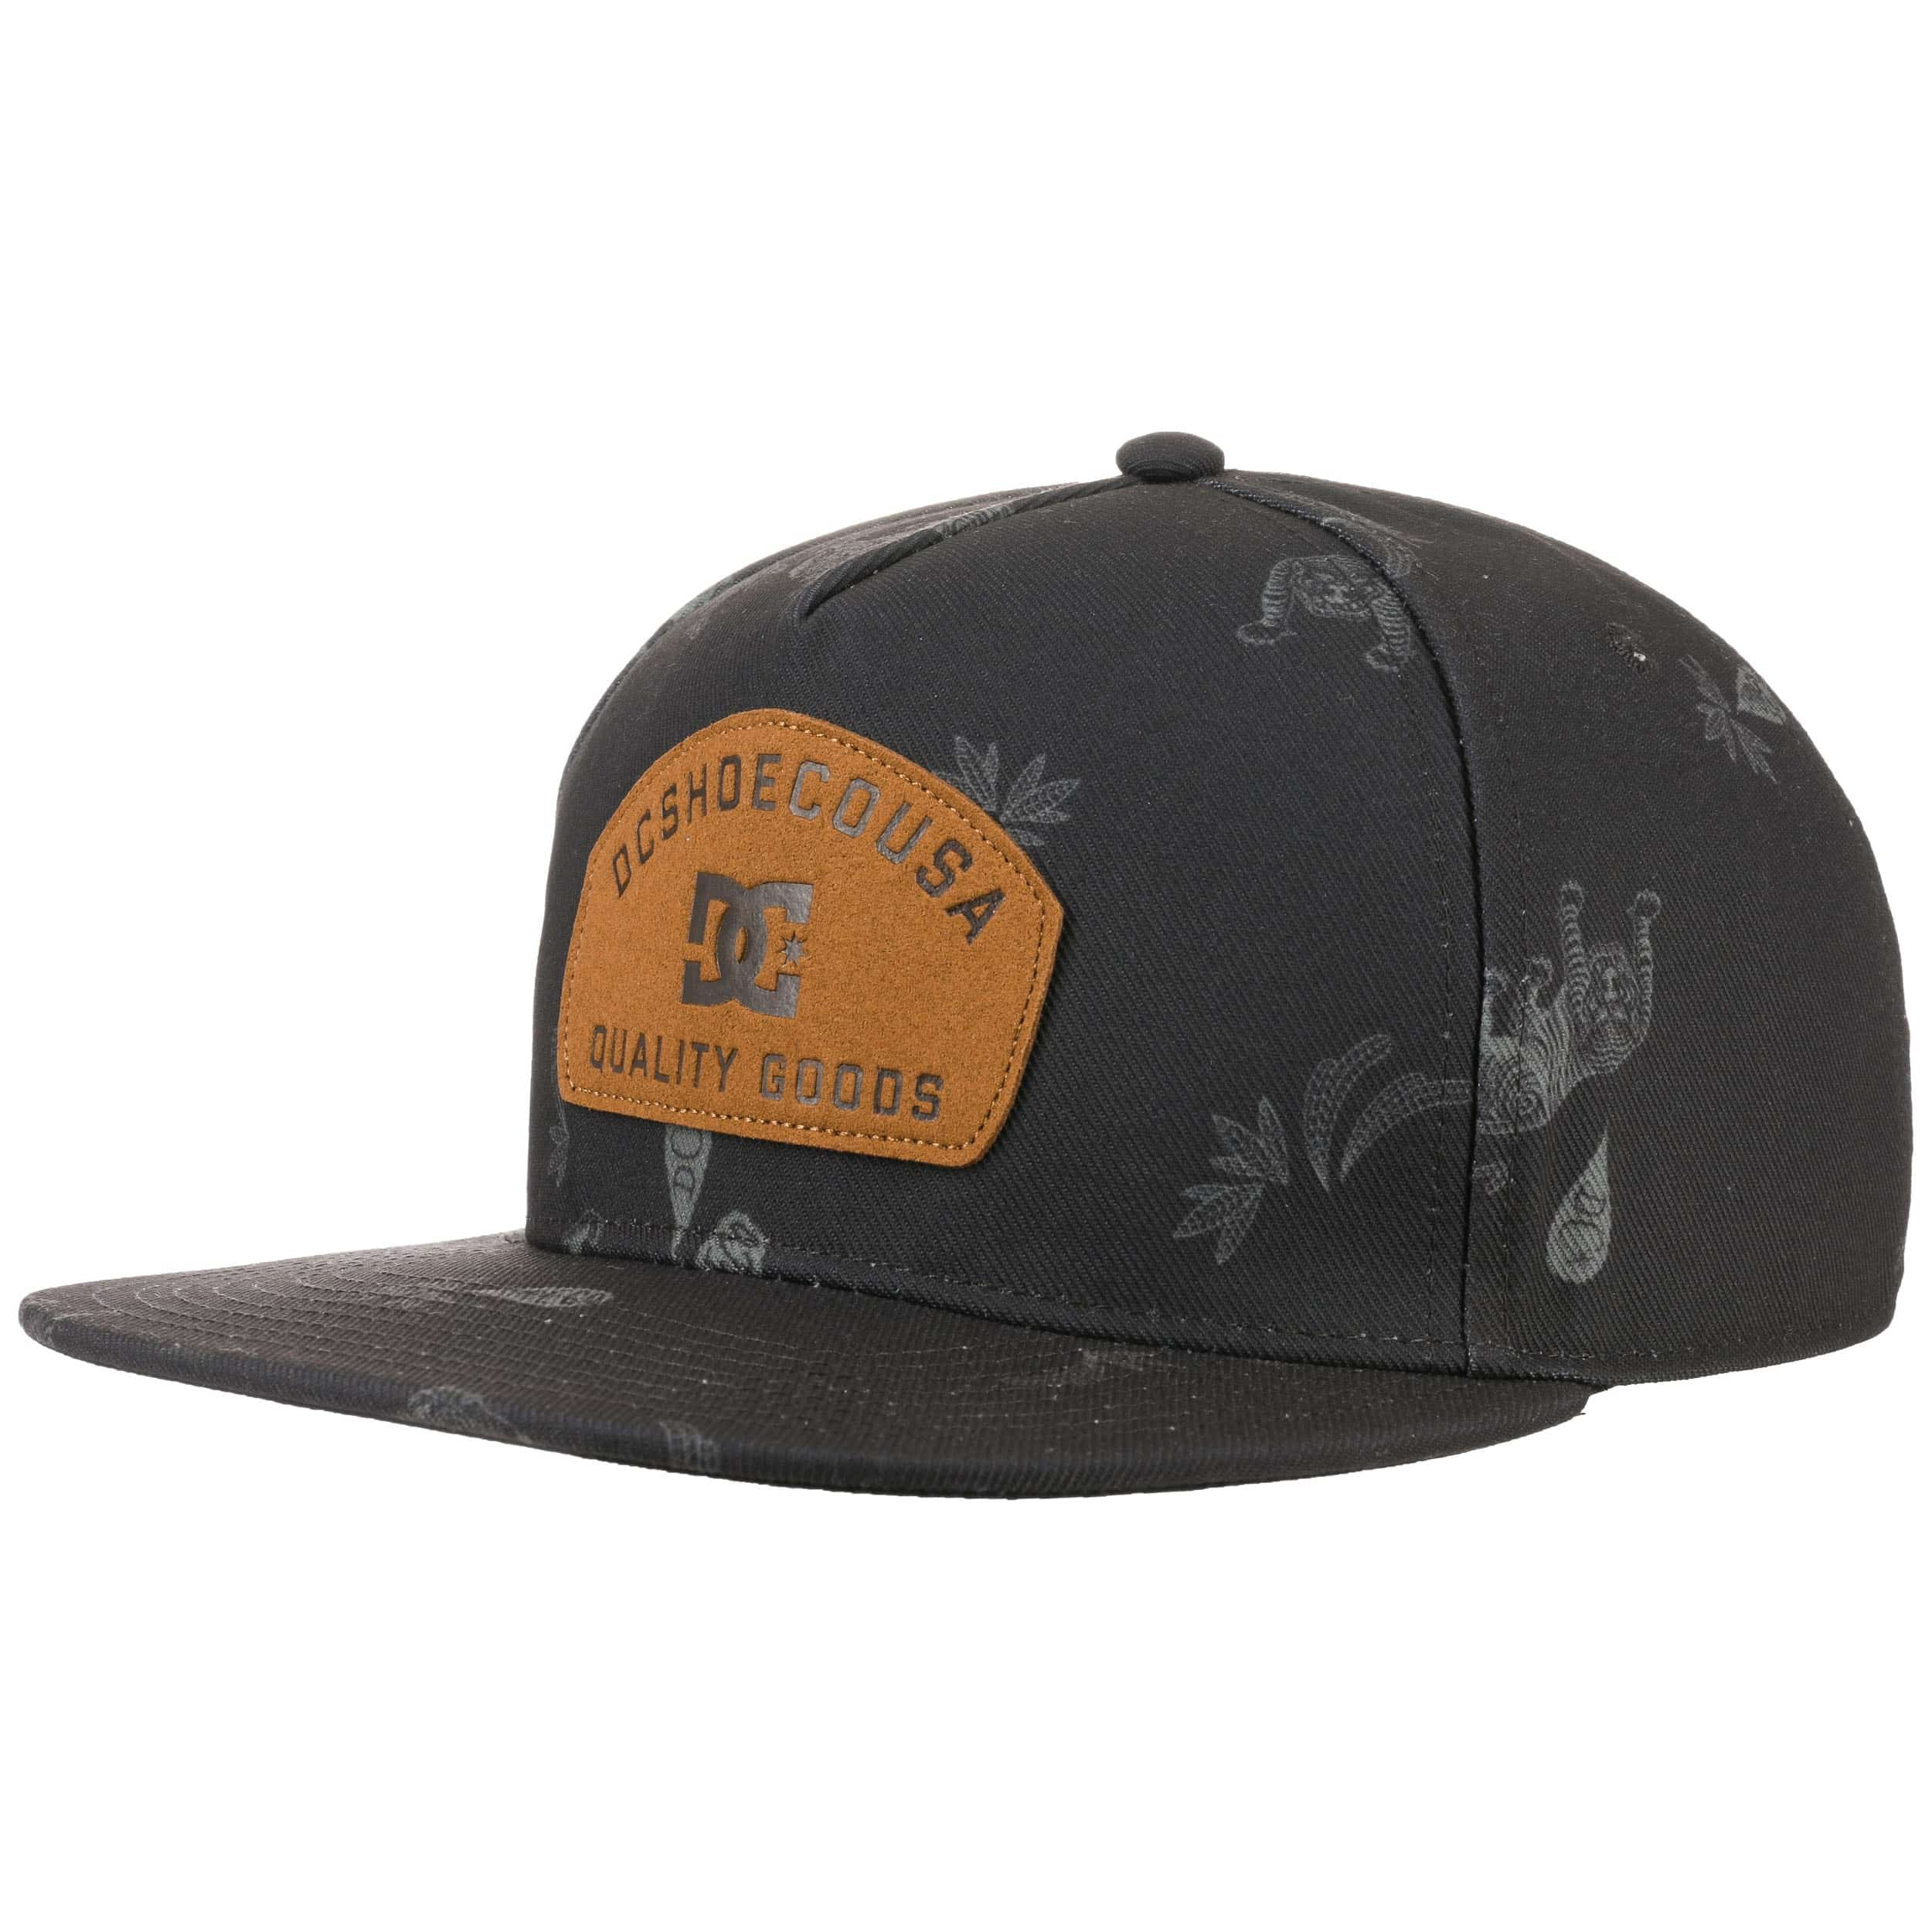 Betterman Snapback Cap. by DC Shoes Co 838c12e5cd6